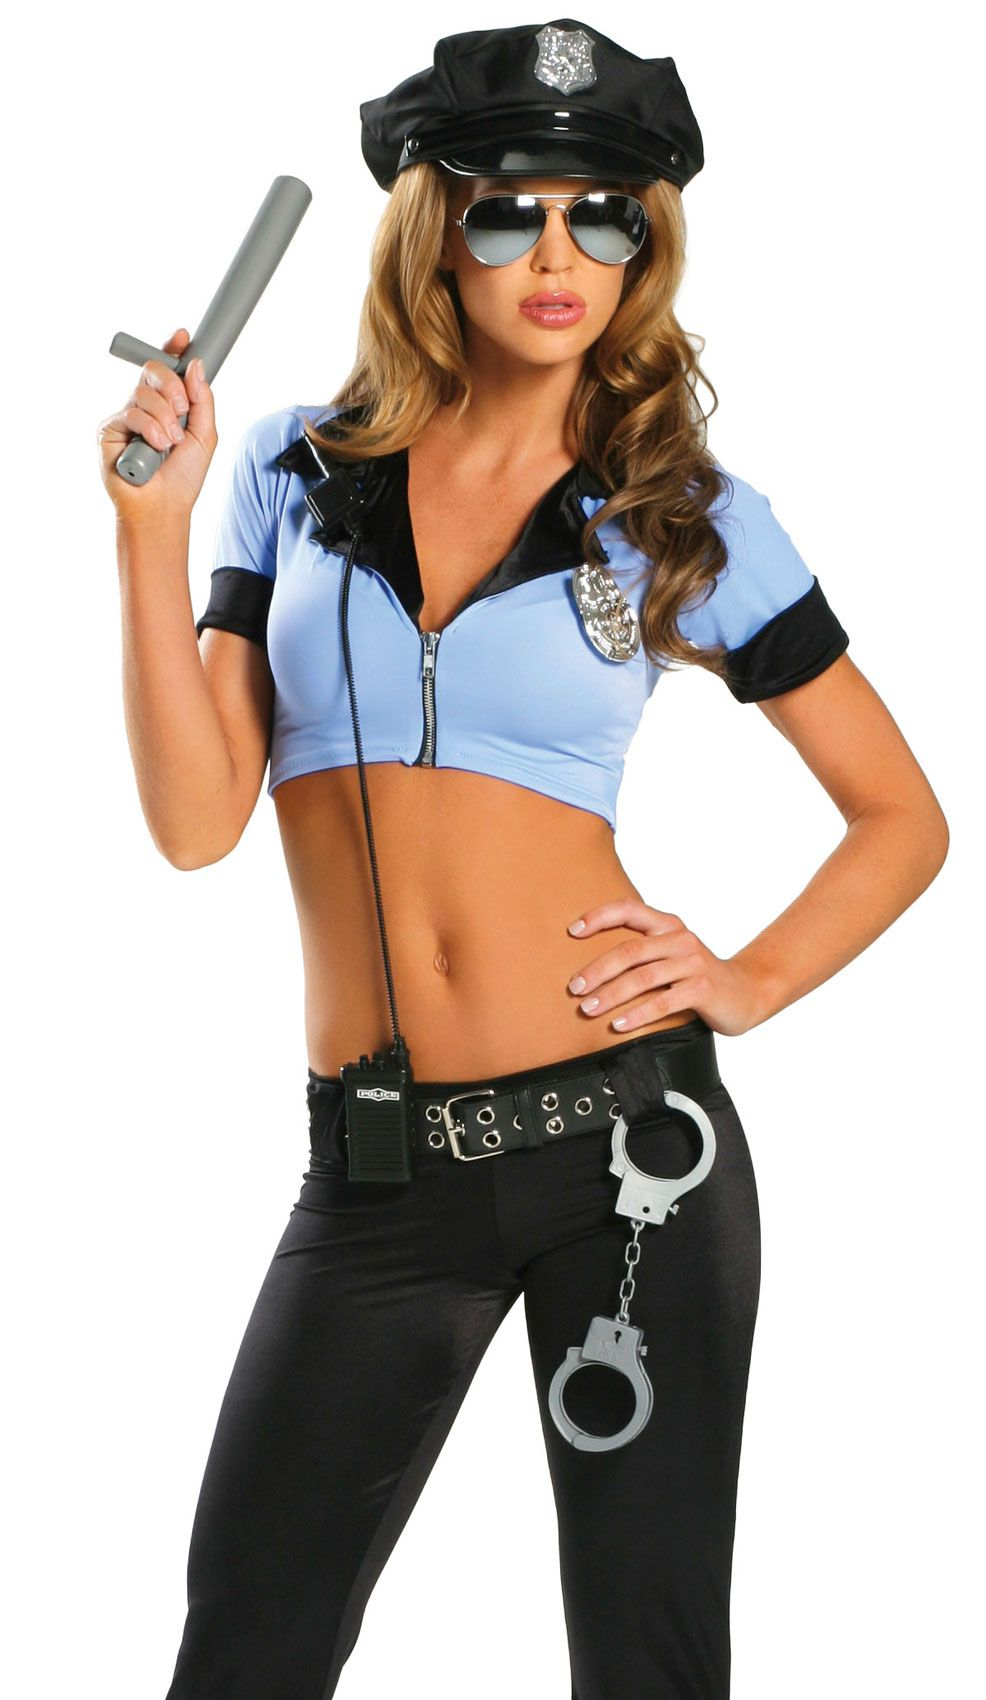 Police Sun Glasses – See more at: http://halloween.florenttb.com/costumes-accessories/police-sun-glasses-com/